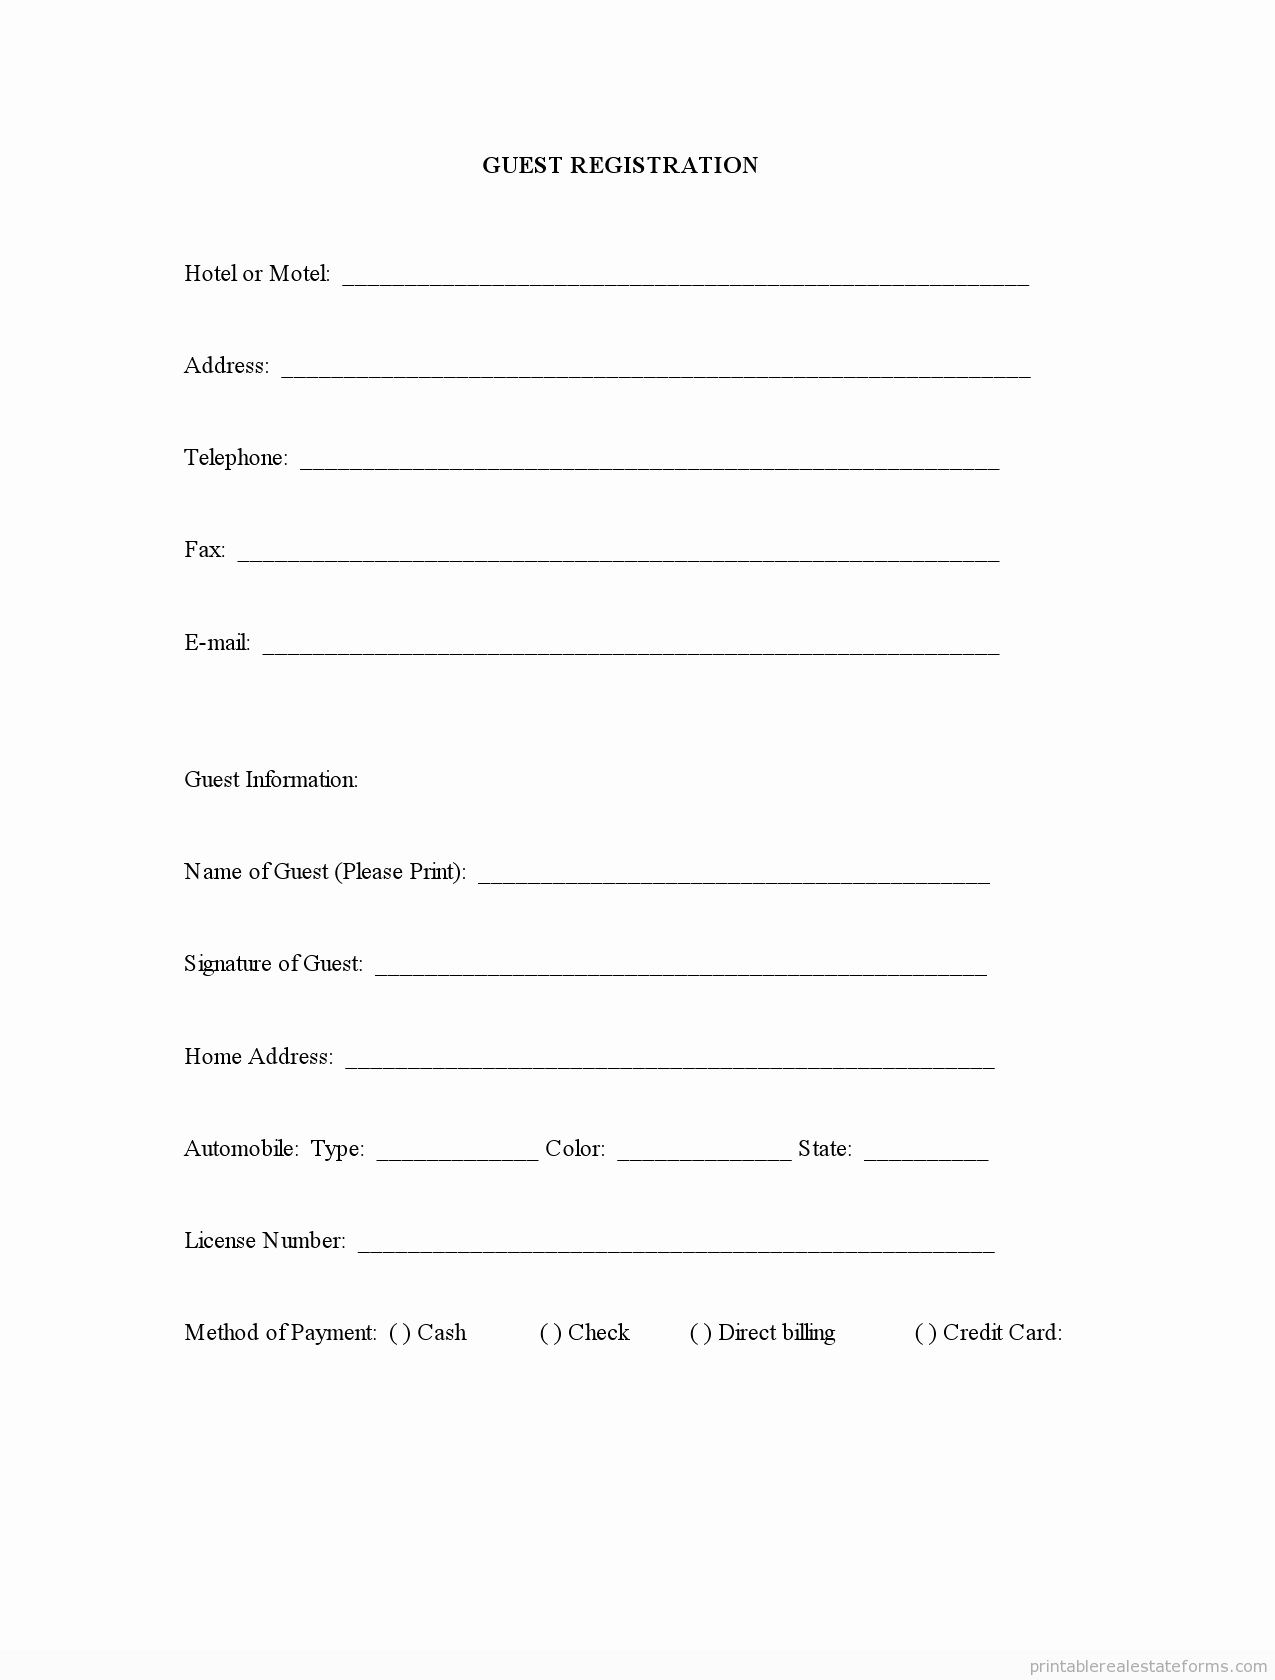 Printable Registration form Template Elegant Sample Printable Guest Registration form